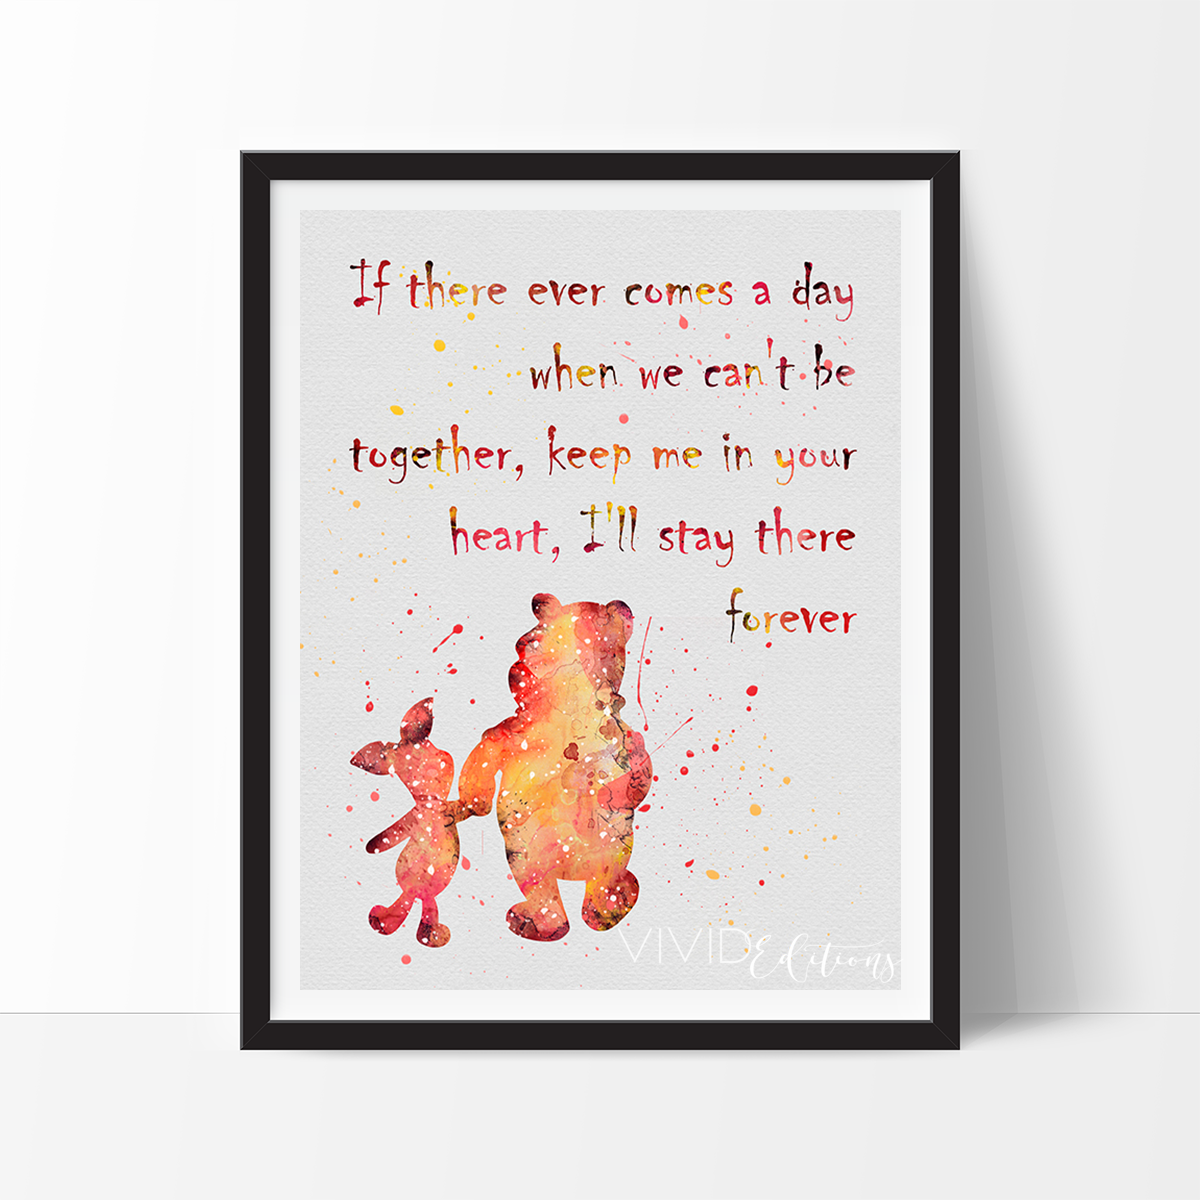 Pooh Quote About Saying Goodbye: Winnie The Pooh Quote Watercolor Art Print